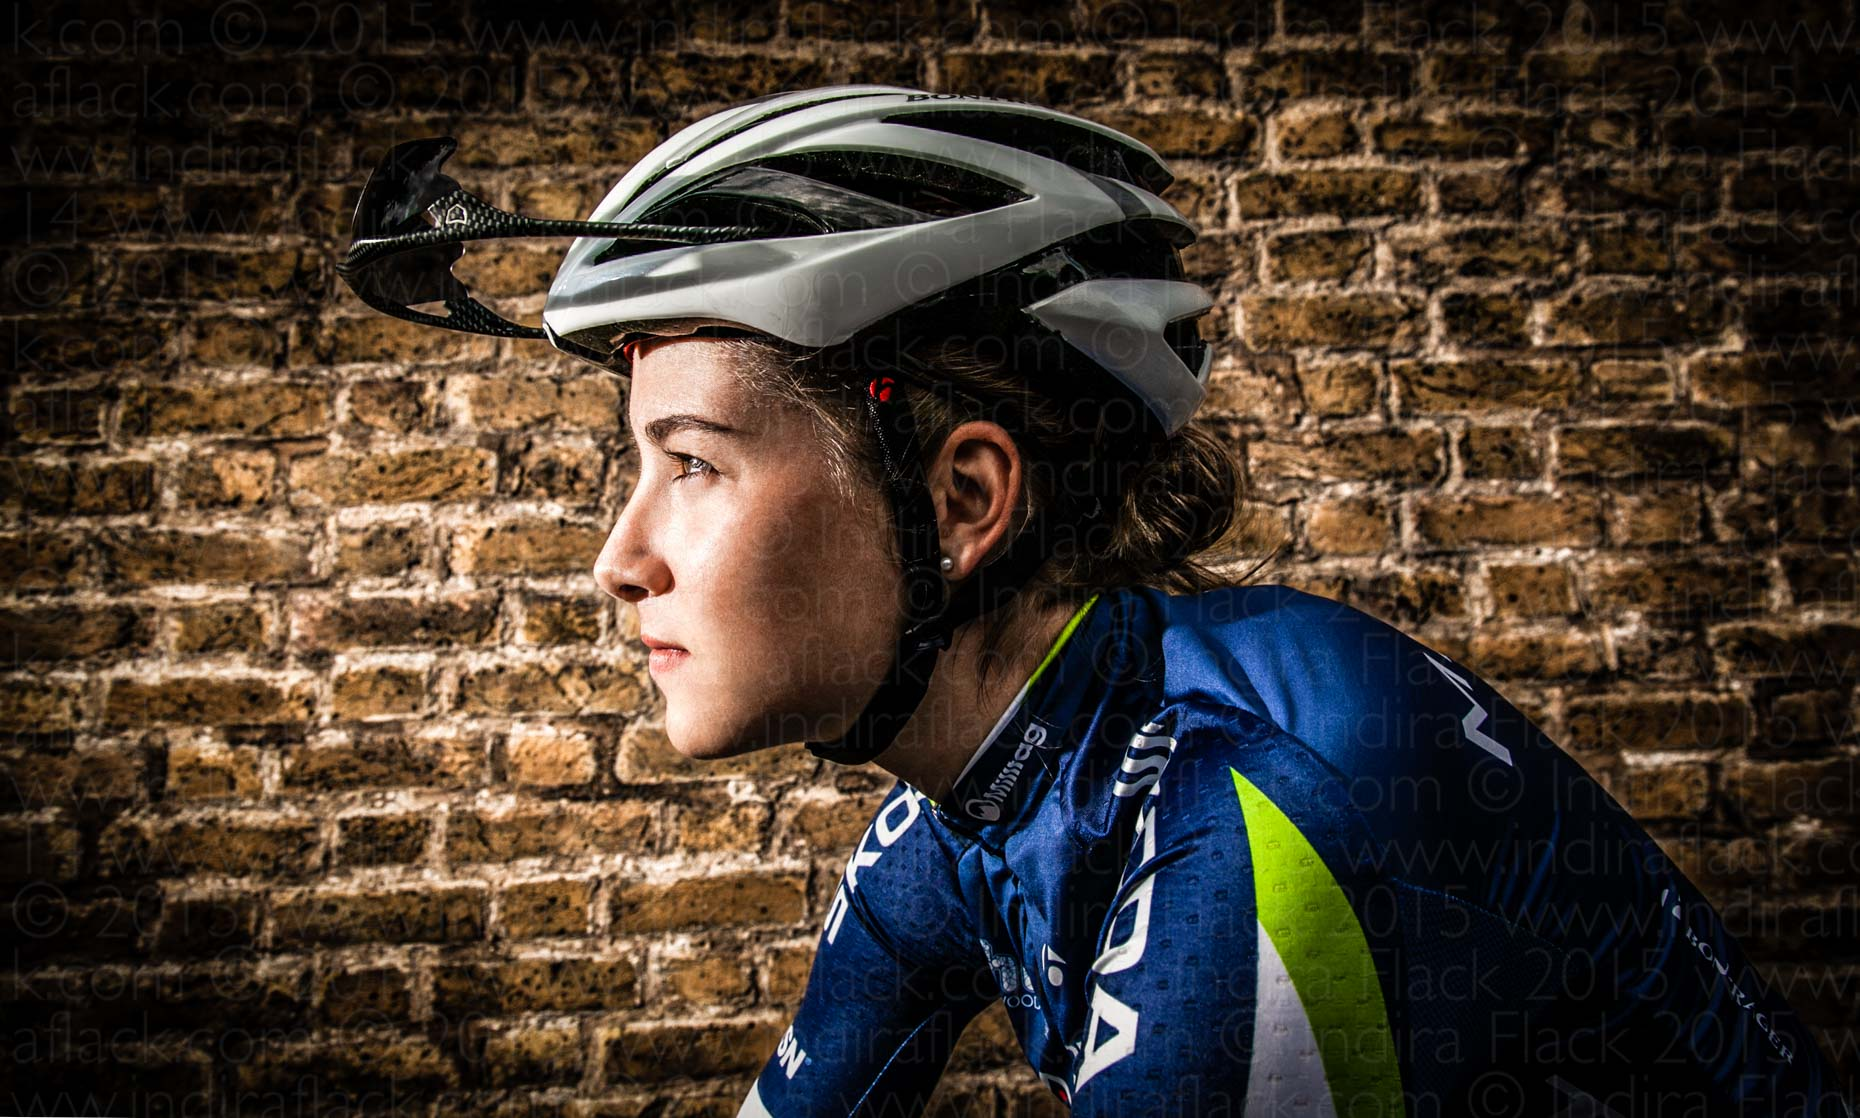 Kim Le Court portrait by Indira Flack for Matrix Pro Cycling